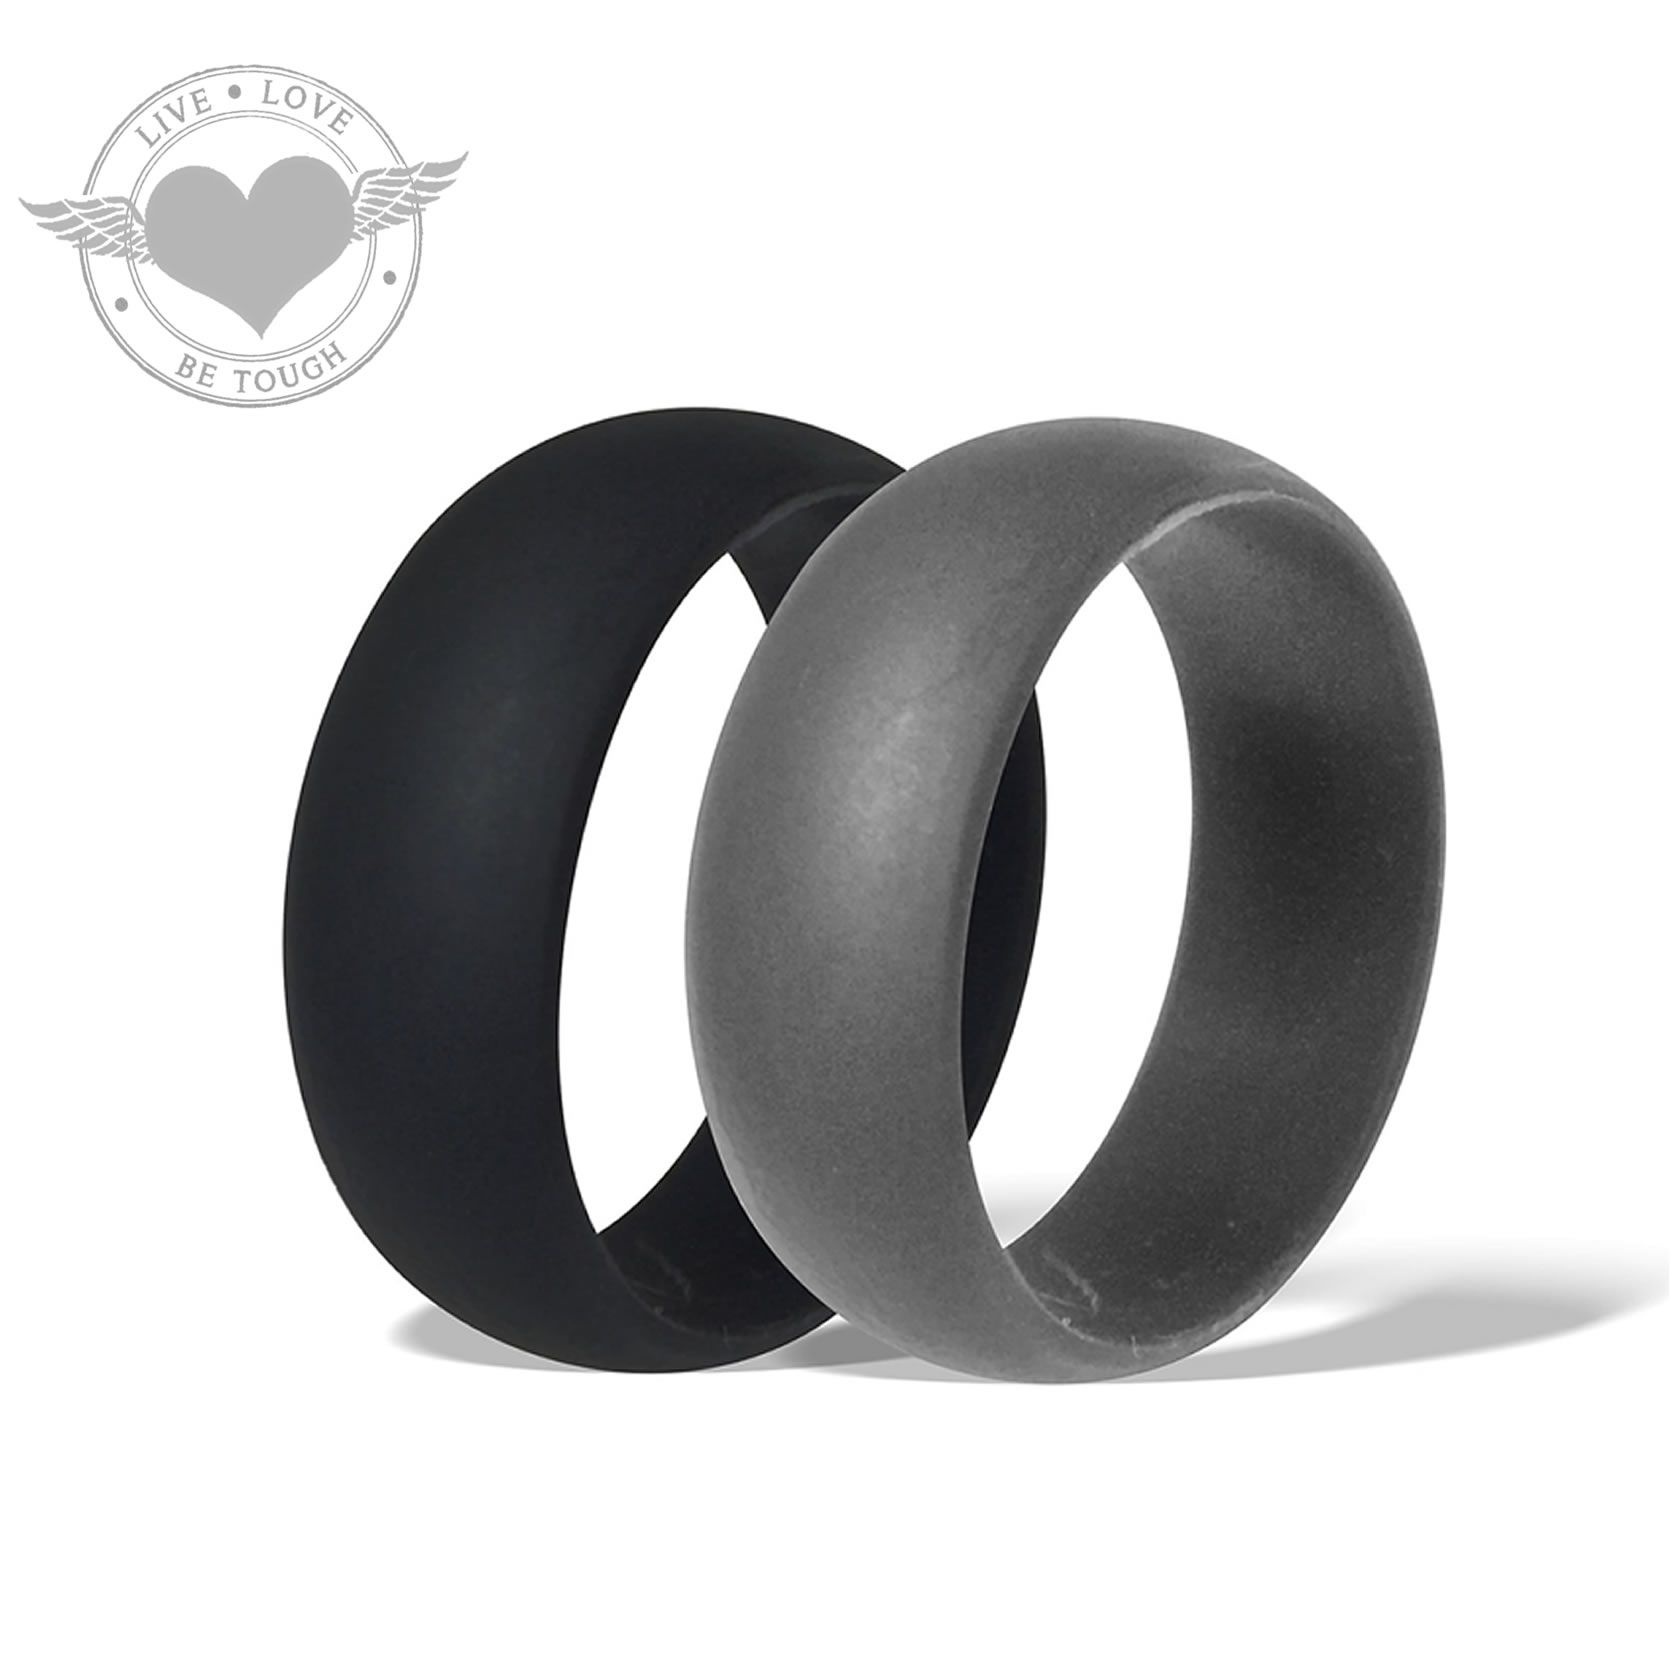 design custom wood grained staghead antler rings engagement wear silicone wild the designs format bands band wedding in